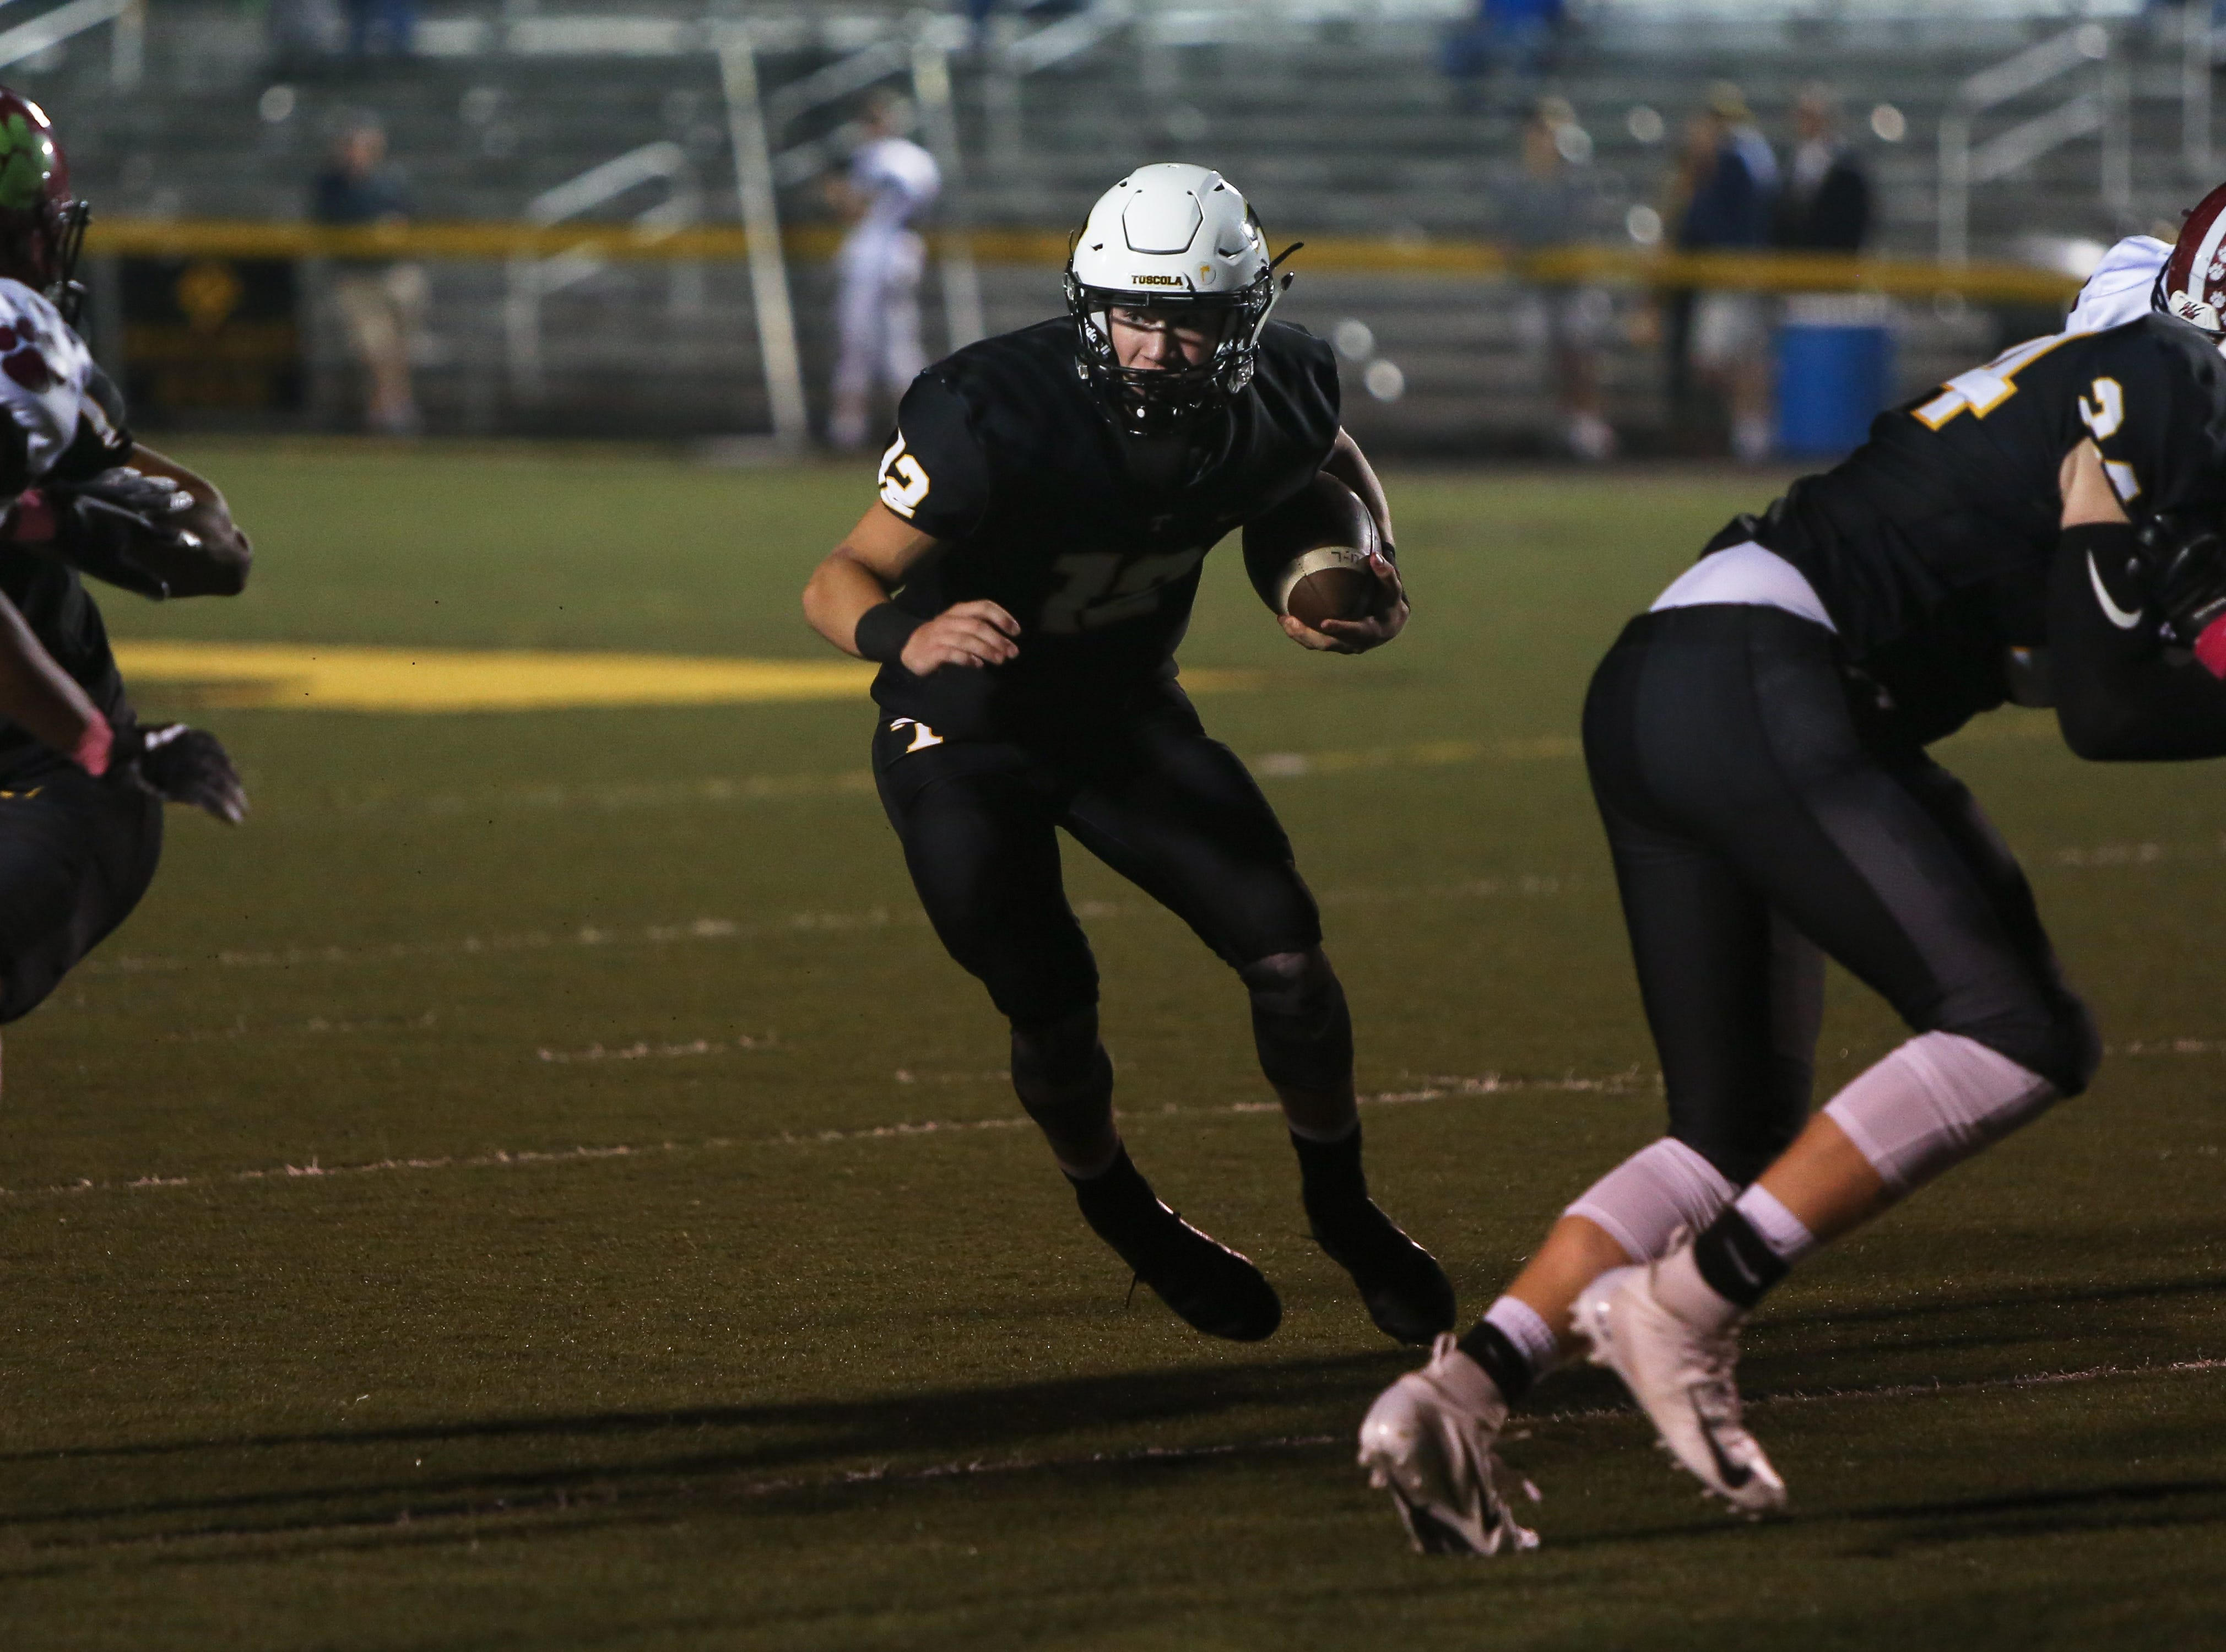 Tuscola's Coleman Bryson runs the ball on Friday, October 5th, 2018 at Tuscola.  Asheville took the win over Tuscola with a final score of 37-6.